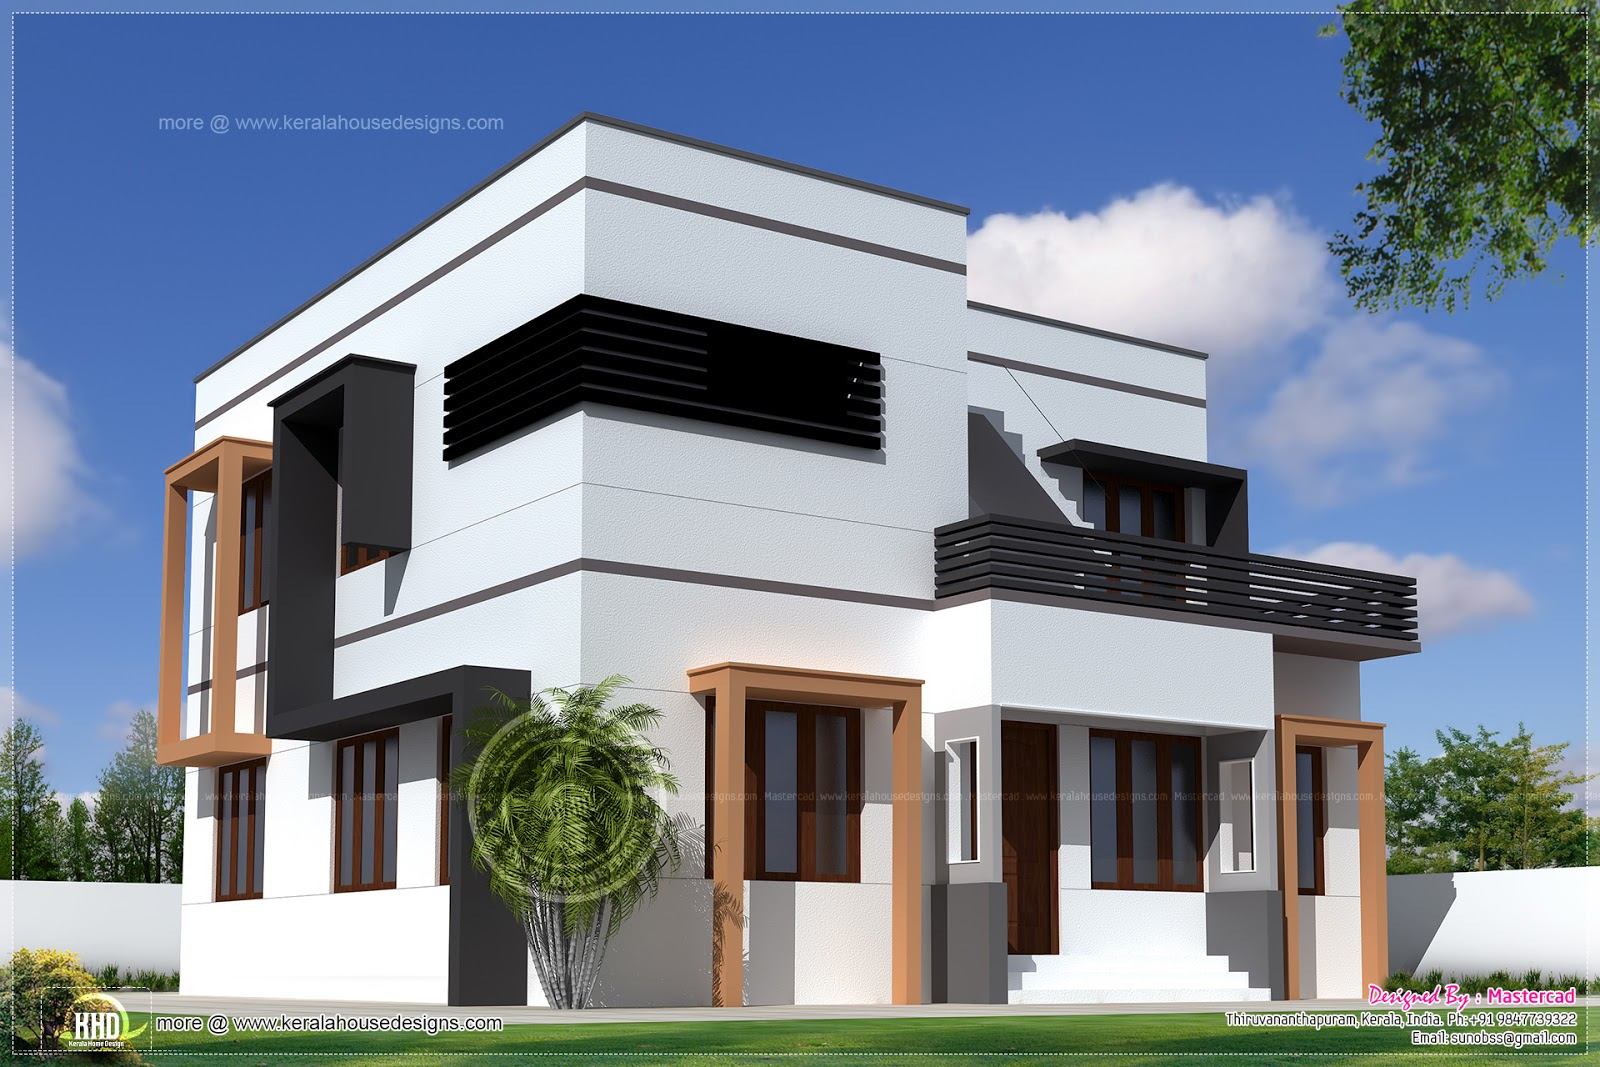 1627 square feet modern villa exterior house design plans for Modern villa exterior design